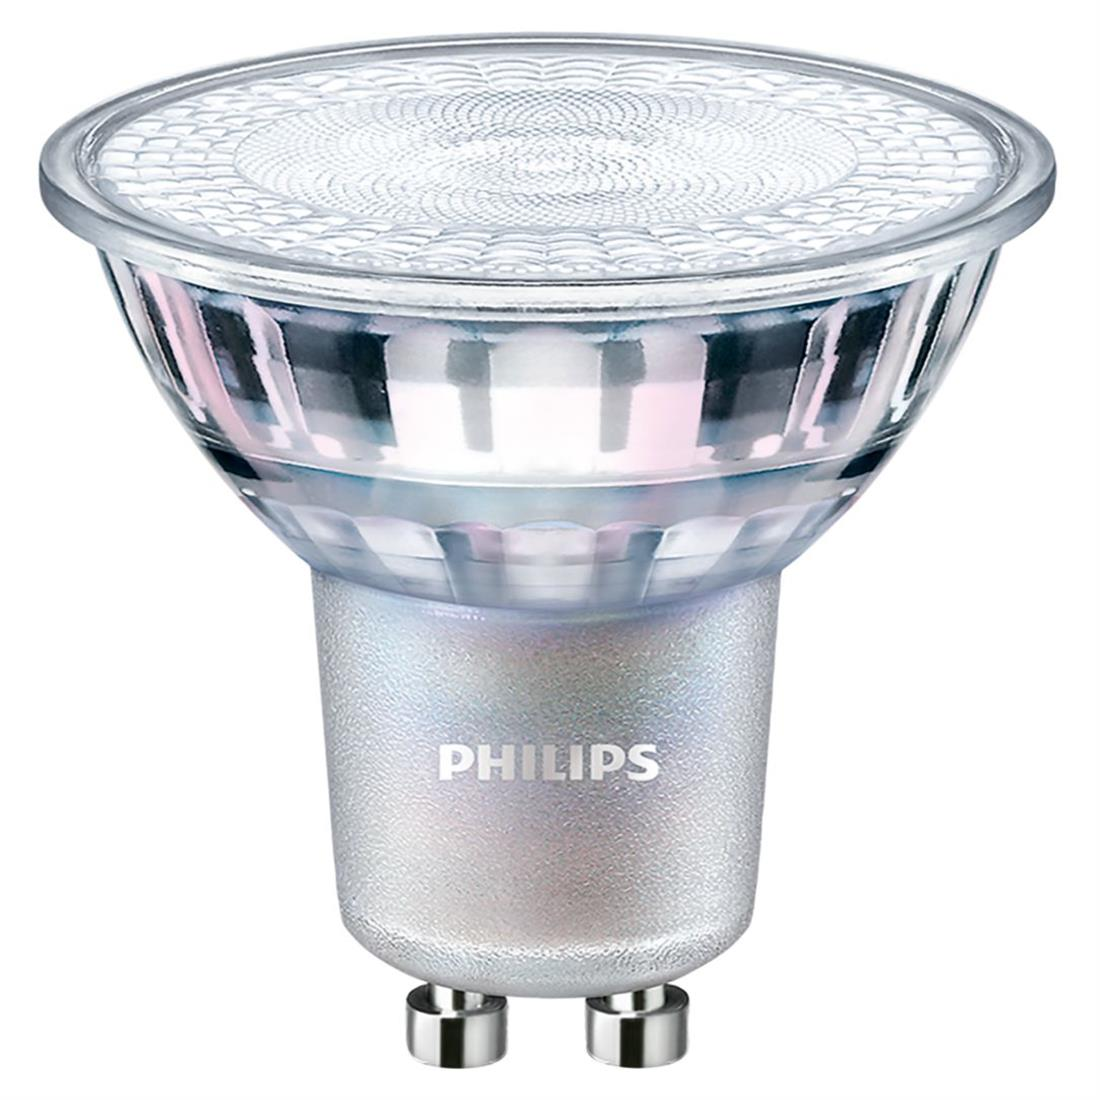 PHILIPS VSGU35W93036D PH MAS LED SPOT VLE D 3.7-35W